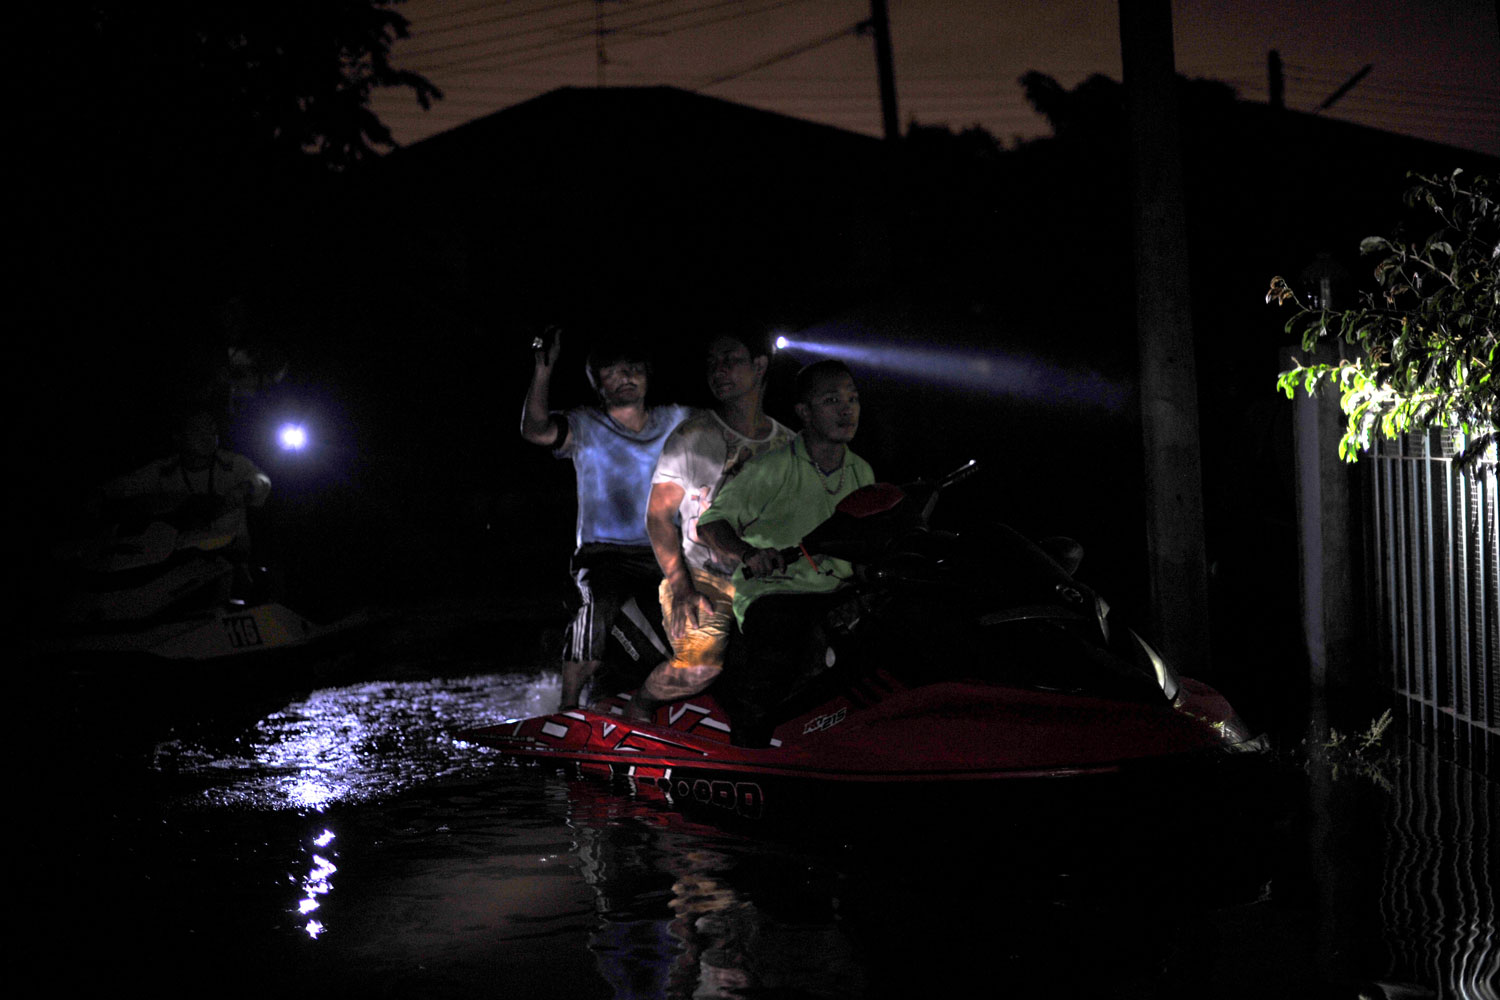 October 15, 2011. Highway police and motorway jetski club volunteers patrolled and handed out food and water to stranded residents along a flooded street in Pathum Thani province in suburban Bangkok. Thousands of sandbags piled alongside a canal on the northern edge of Bangkok form the last line of defense between the city of 12 million people and a wall of floodwater bearing down on the capital.